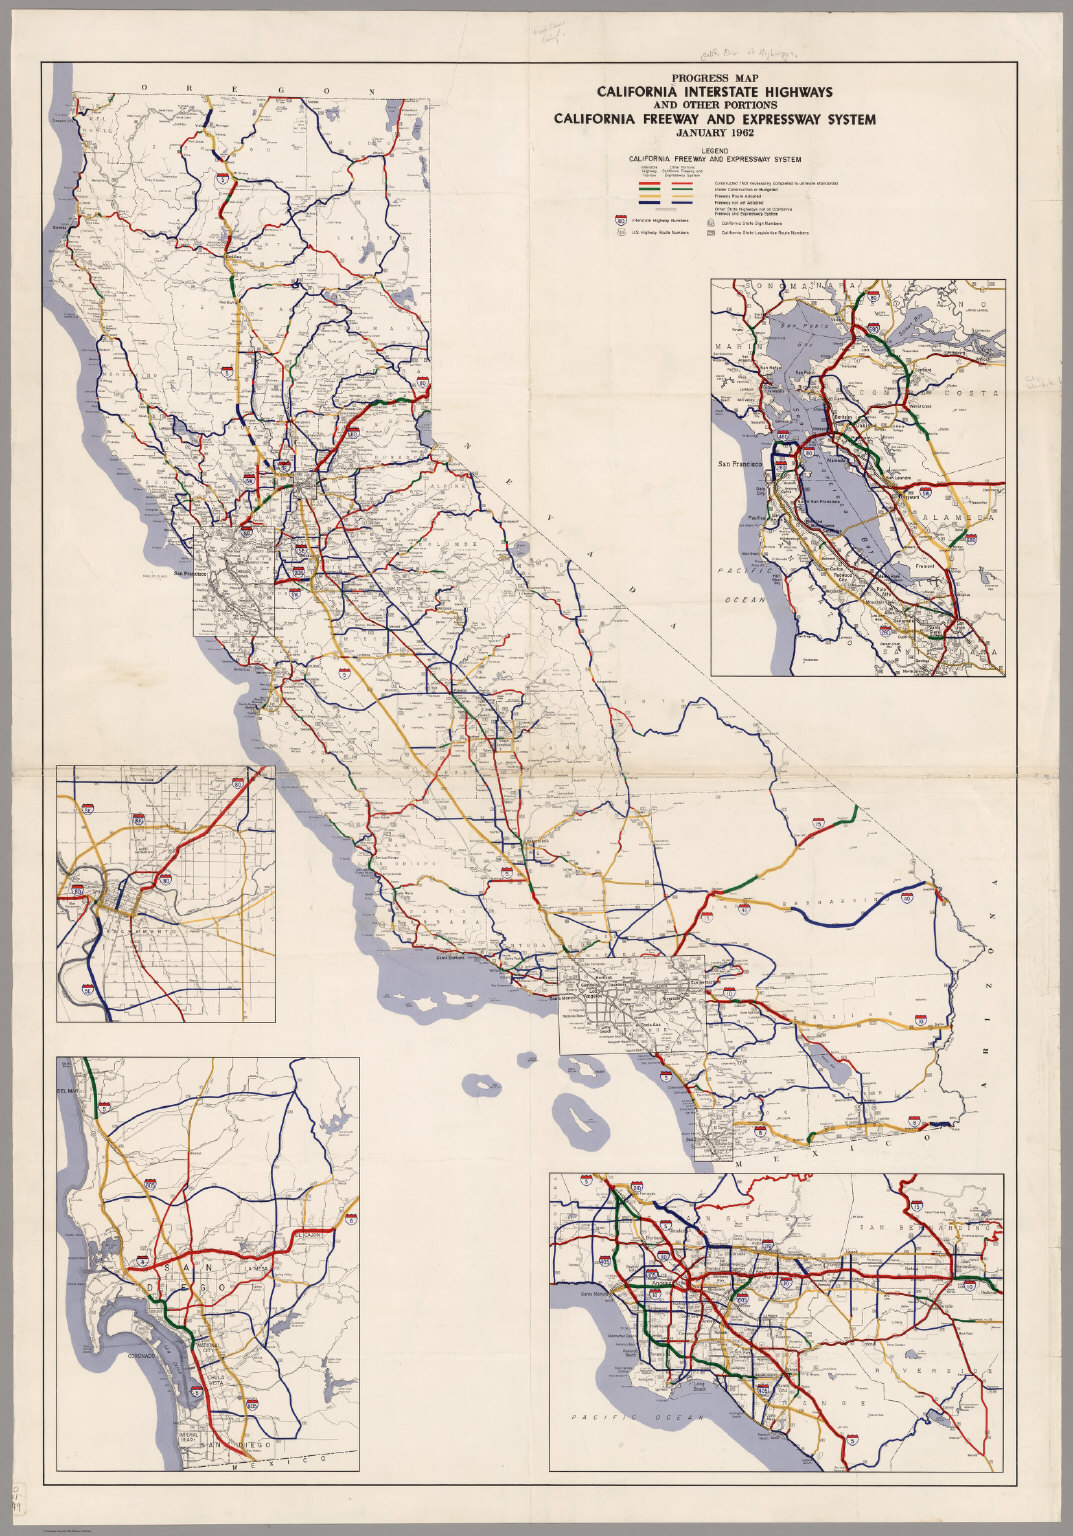 Progress Map California Interstate Highways And Other Portions May